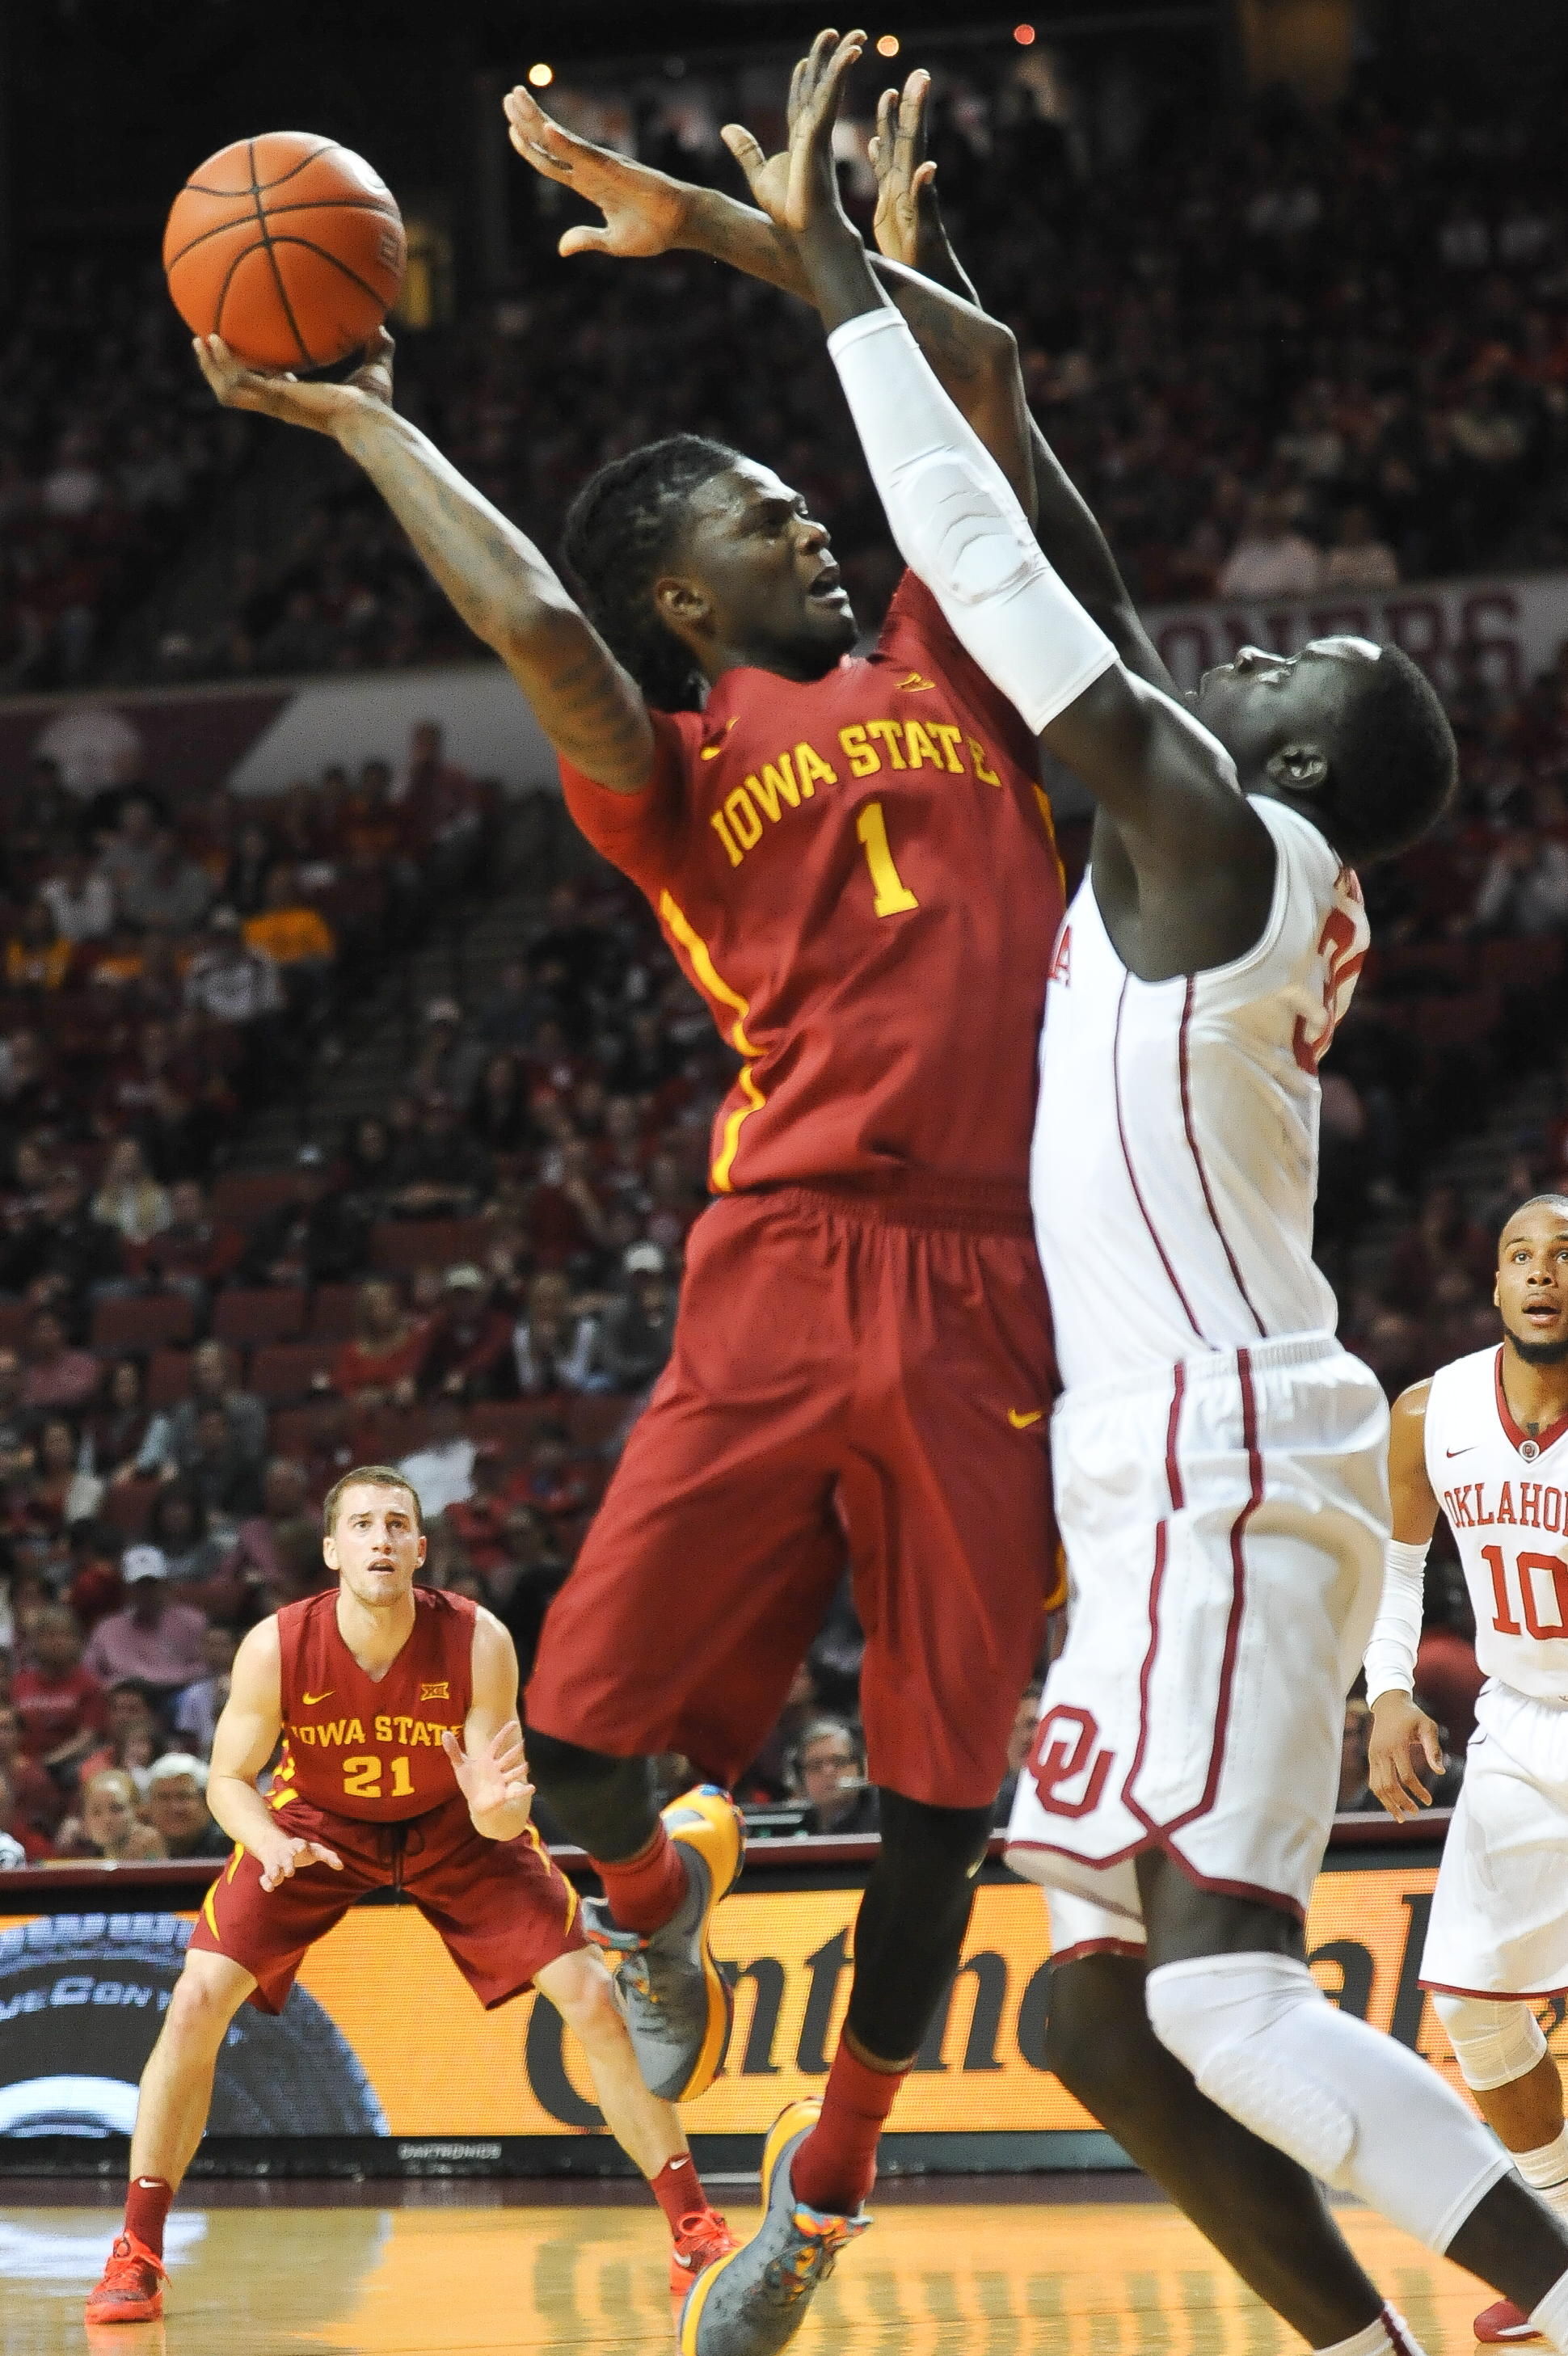 Iowa State forward Simeon Carter (1) shoots over Oklahoma center Akolda Manyang (30) during the first half of an NCAA college basketball game in Norman, Okla., Saturday, Jan. 2, 2016.  (AP Photo/Kyle Phillips)